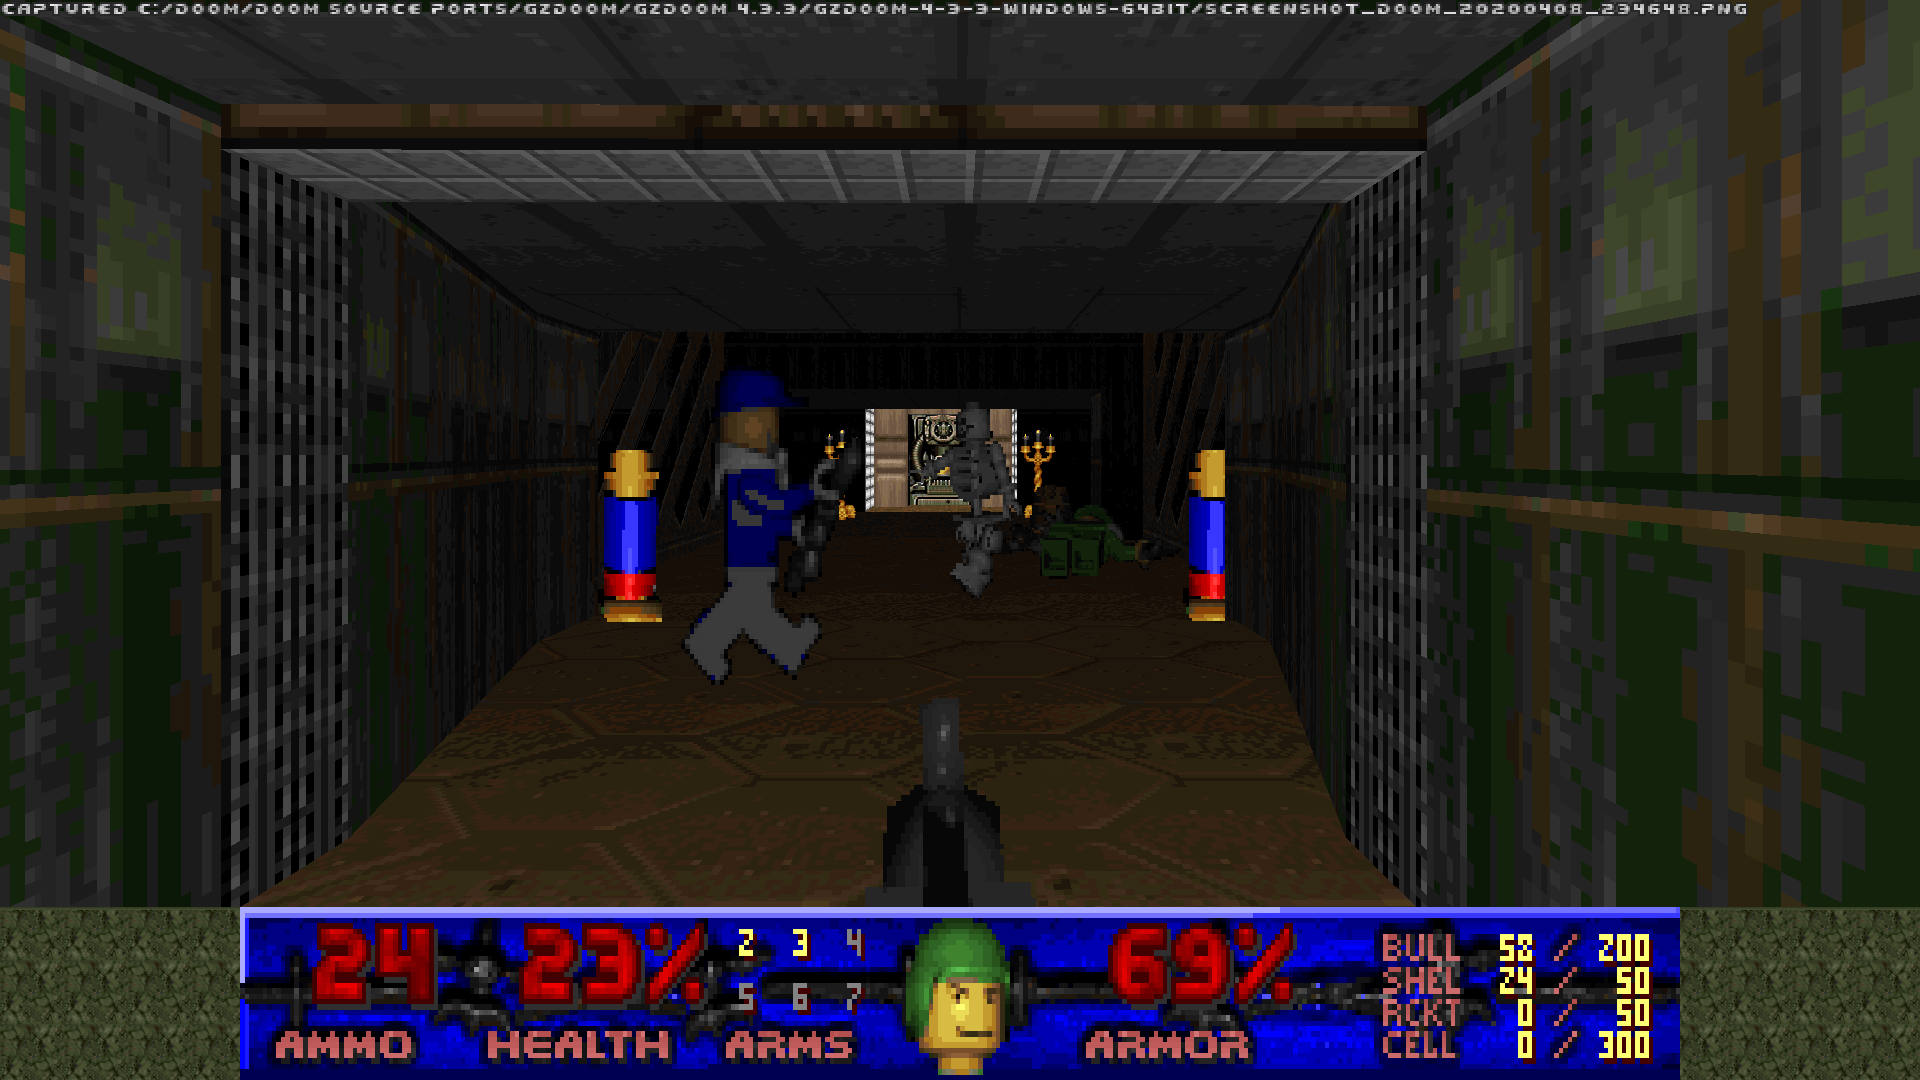 Screenshot_Doom_20200408_234651.png.14088c407bba28c9471bac9588c81b8d.png